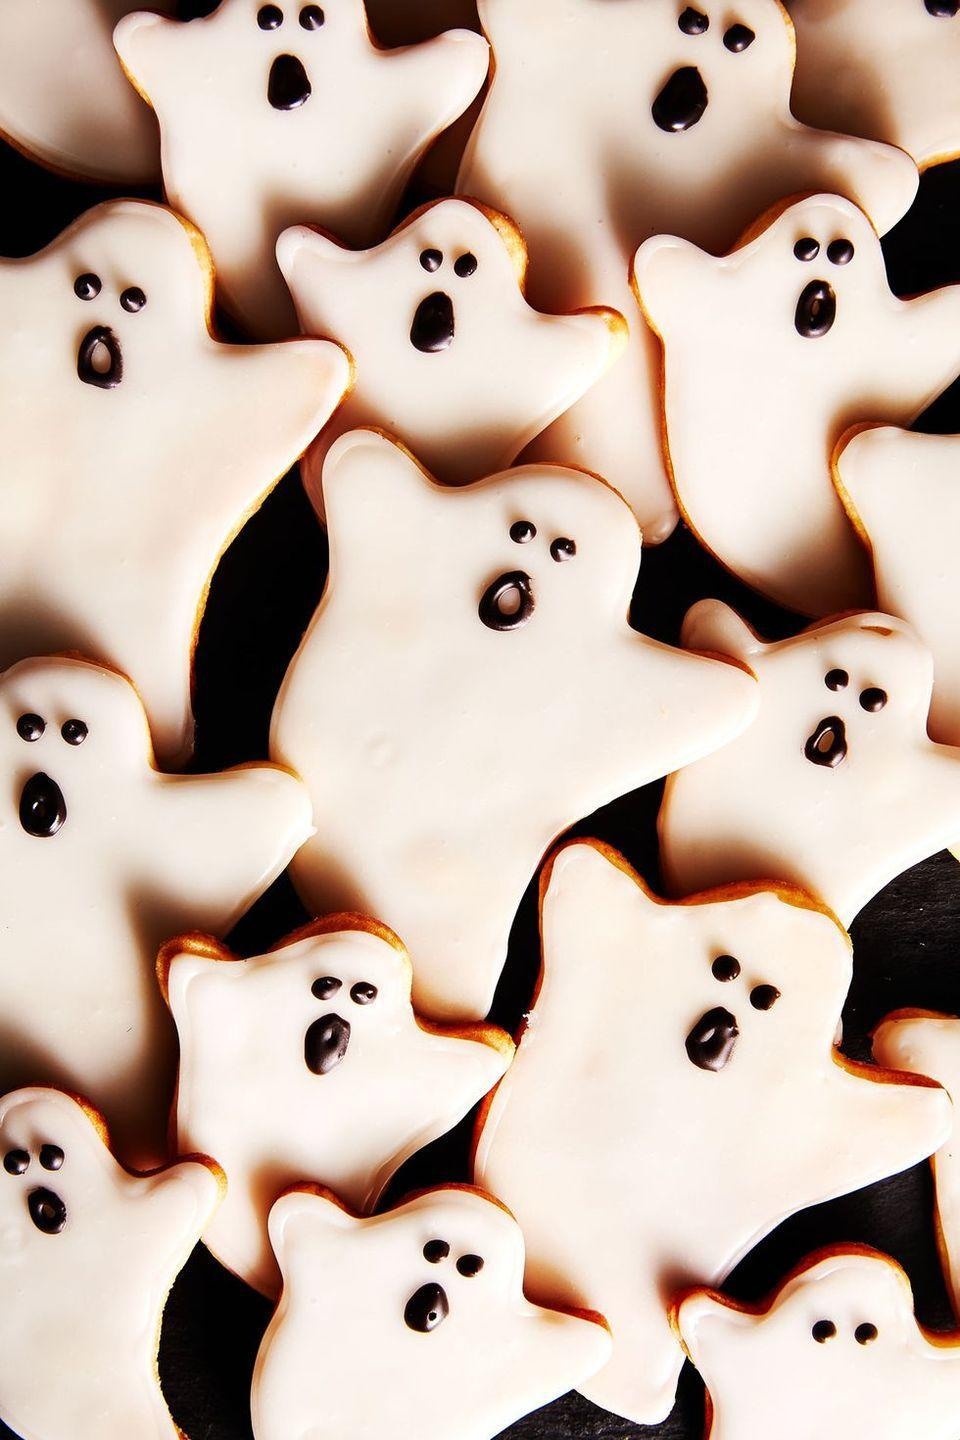 """<p>If you put out a tray of these simple and tasty cookies prepare to have each ghost spookily disappear. </p><p><strong><em>Get the recipe at <a href=""""https://www.delish.com/holiday-recipes/halloween/a28637917/ghost-cookies-recipe/"""" rel=""""nofollow noopener"""" target=""""_blank"""" data-ylk=""""slk:Delish"""" class=""""link rapid-noclick-resp"""">Delish</a>. </em></strong></p>"""